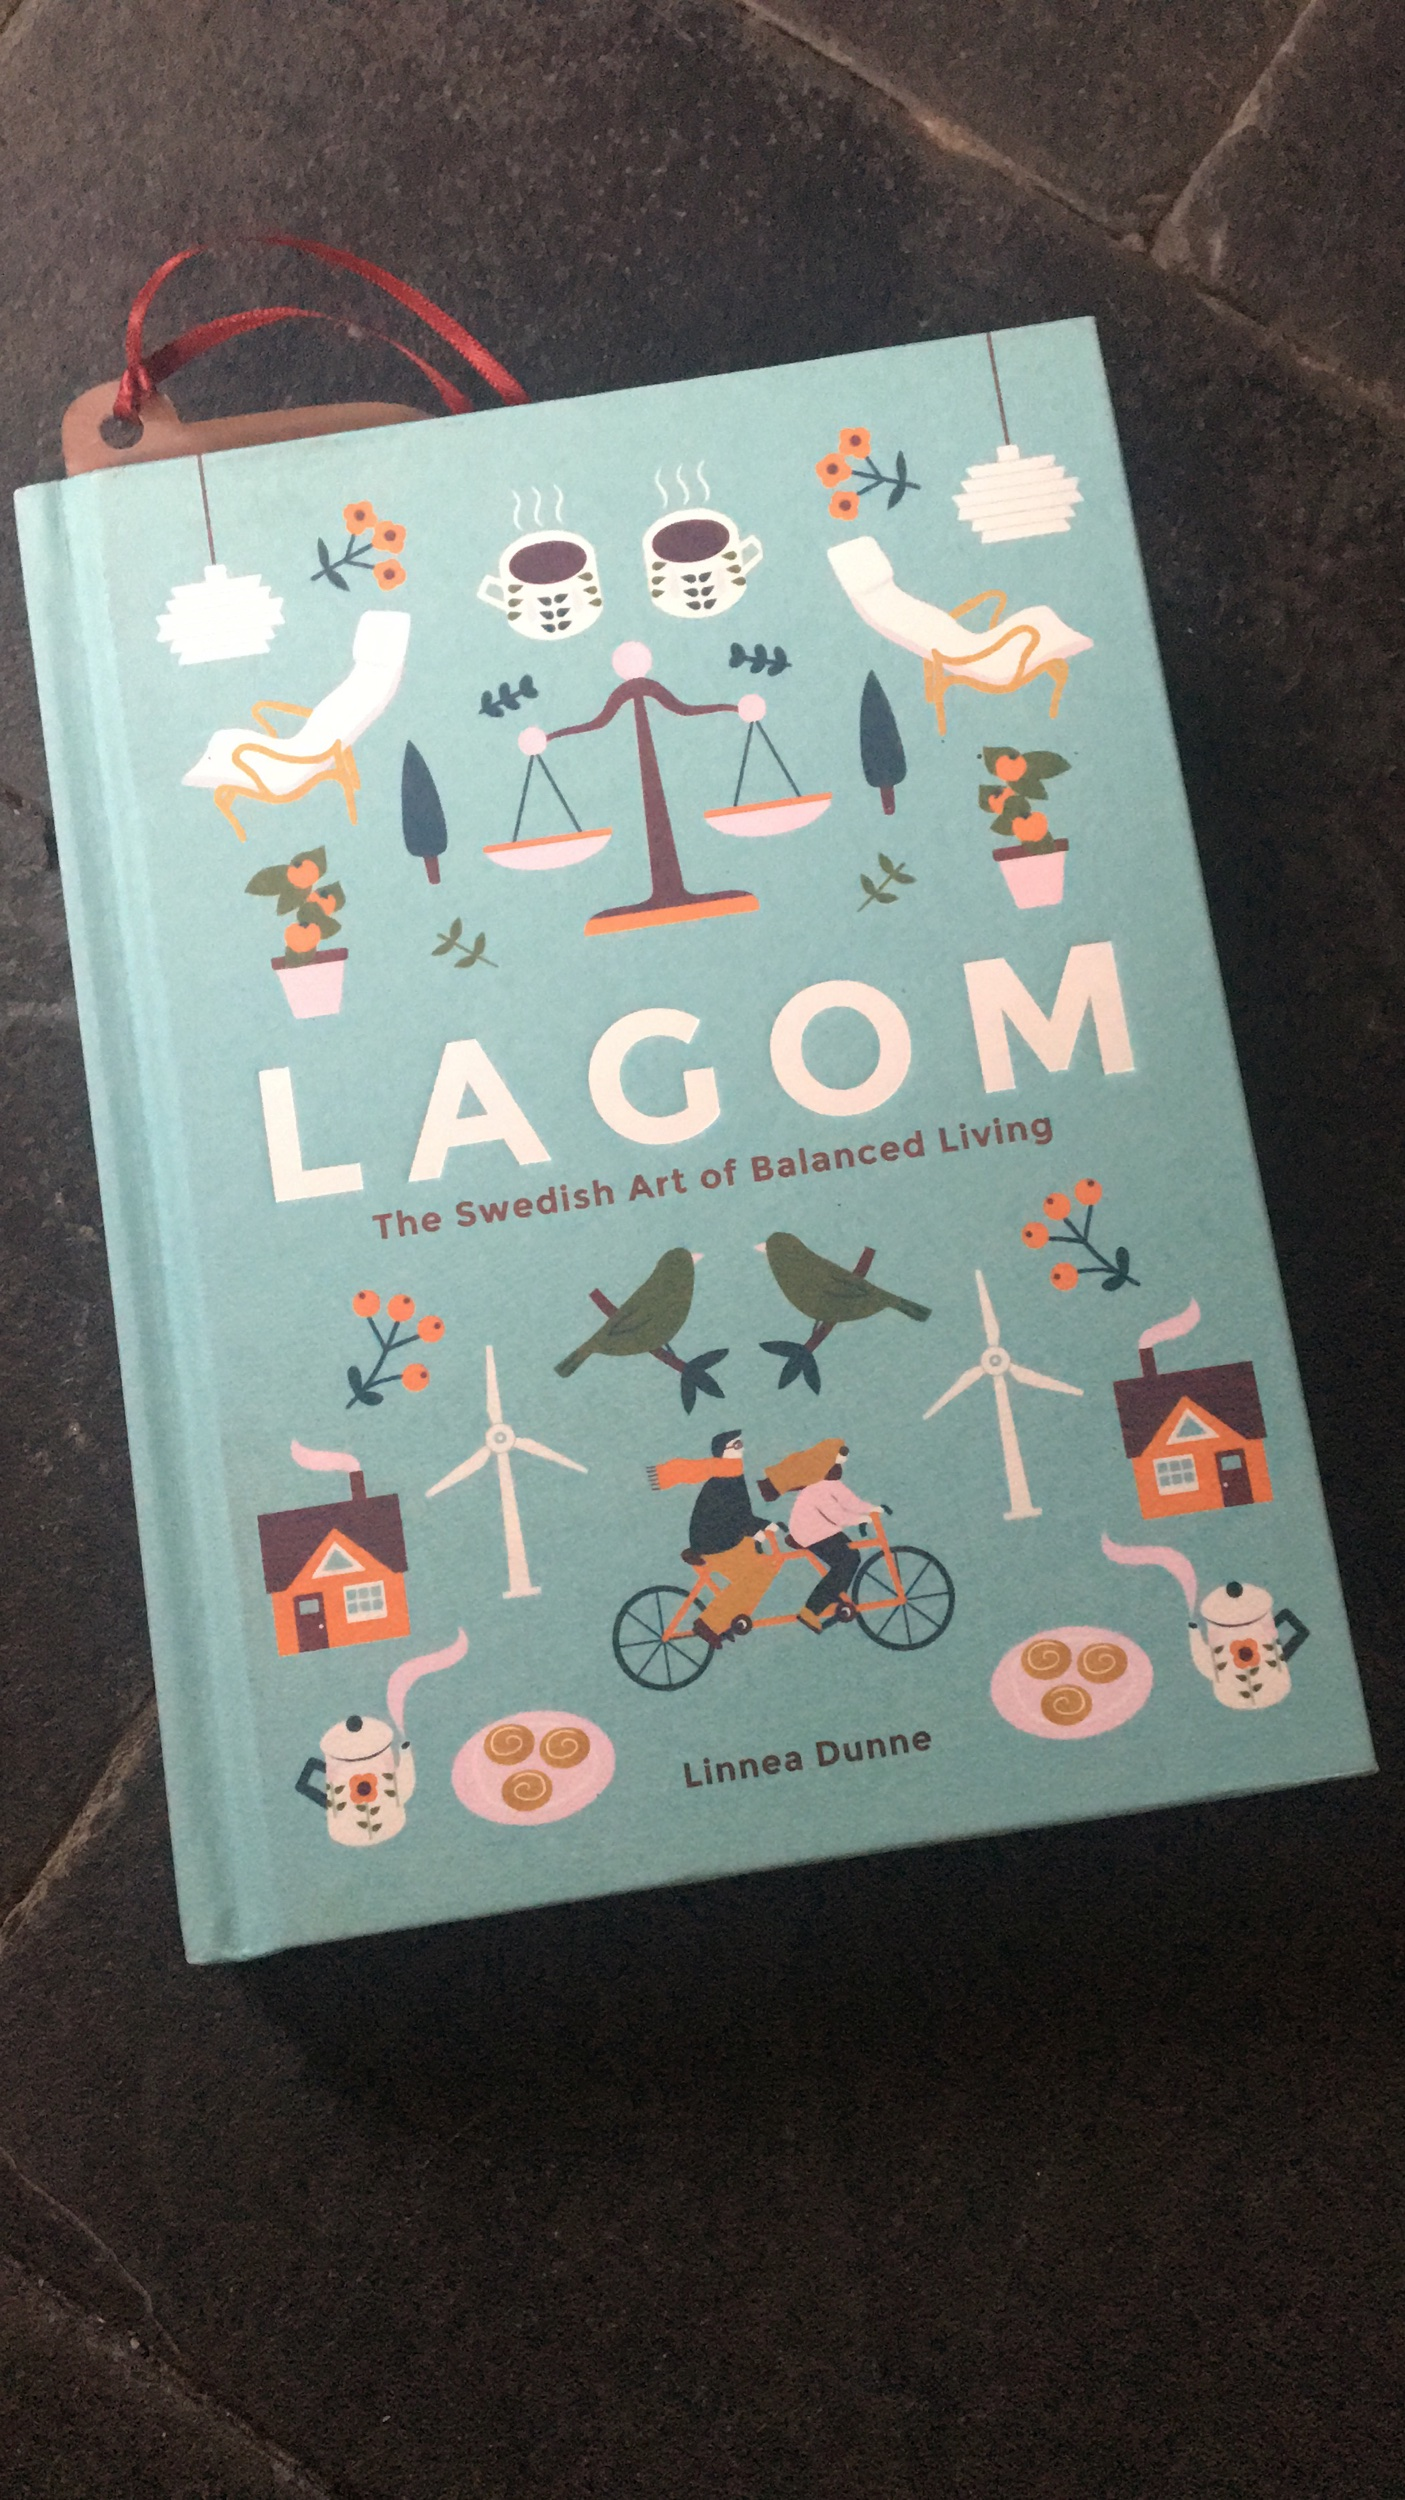 Lagom your life! This is a great read.